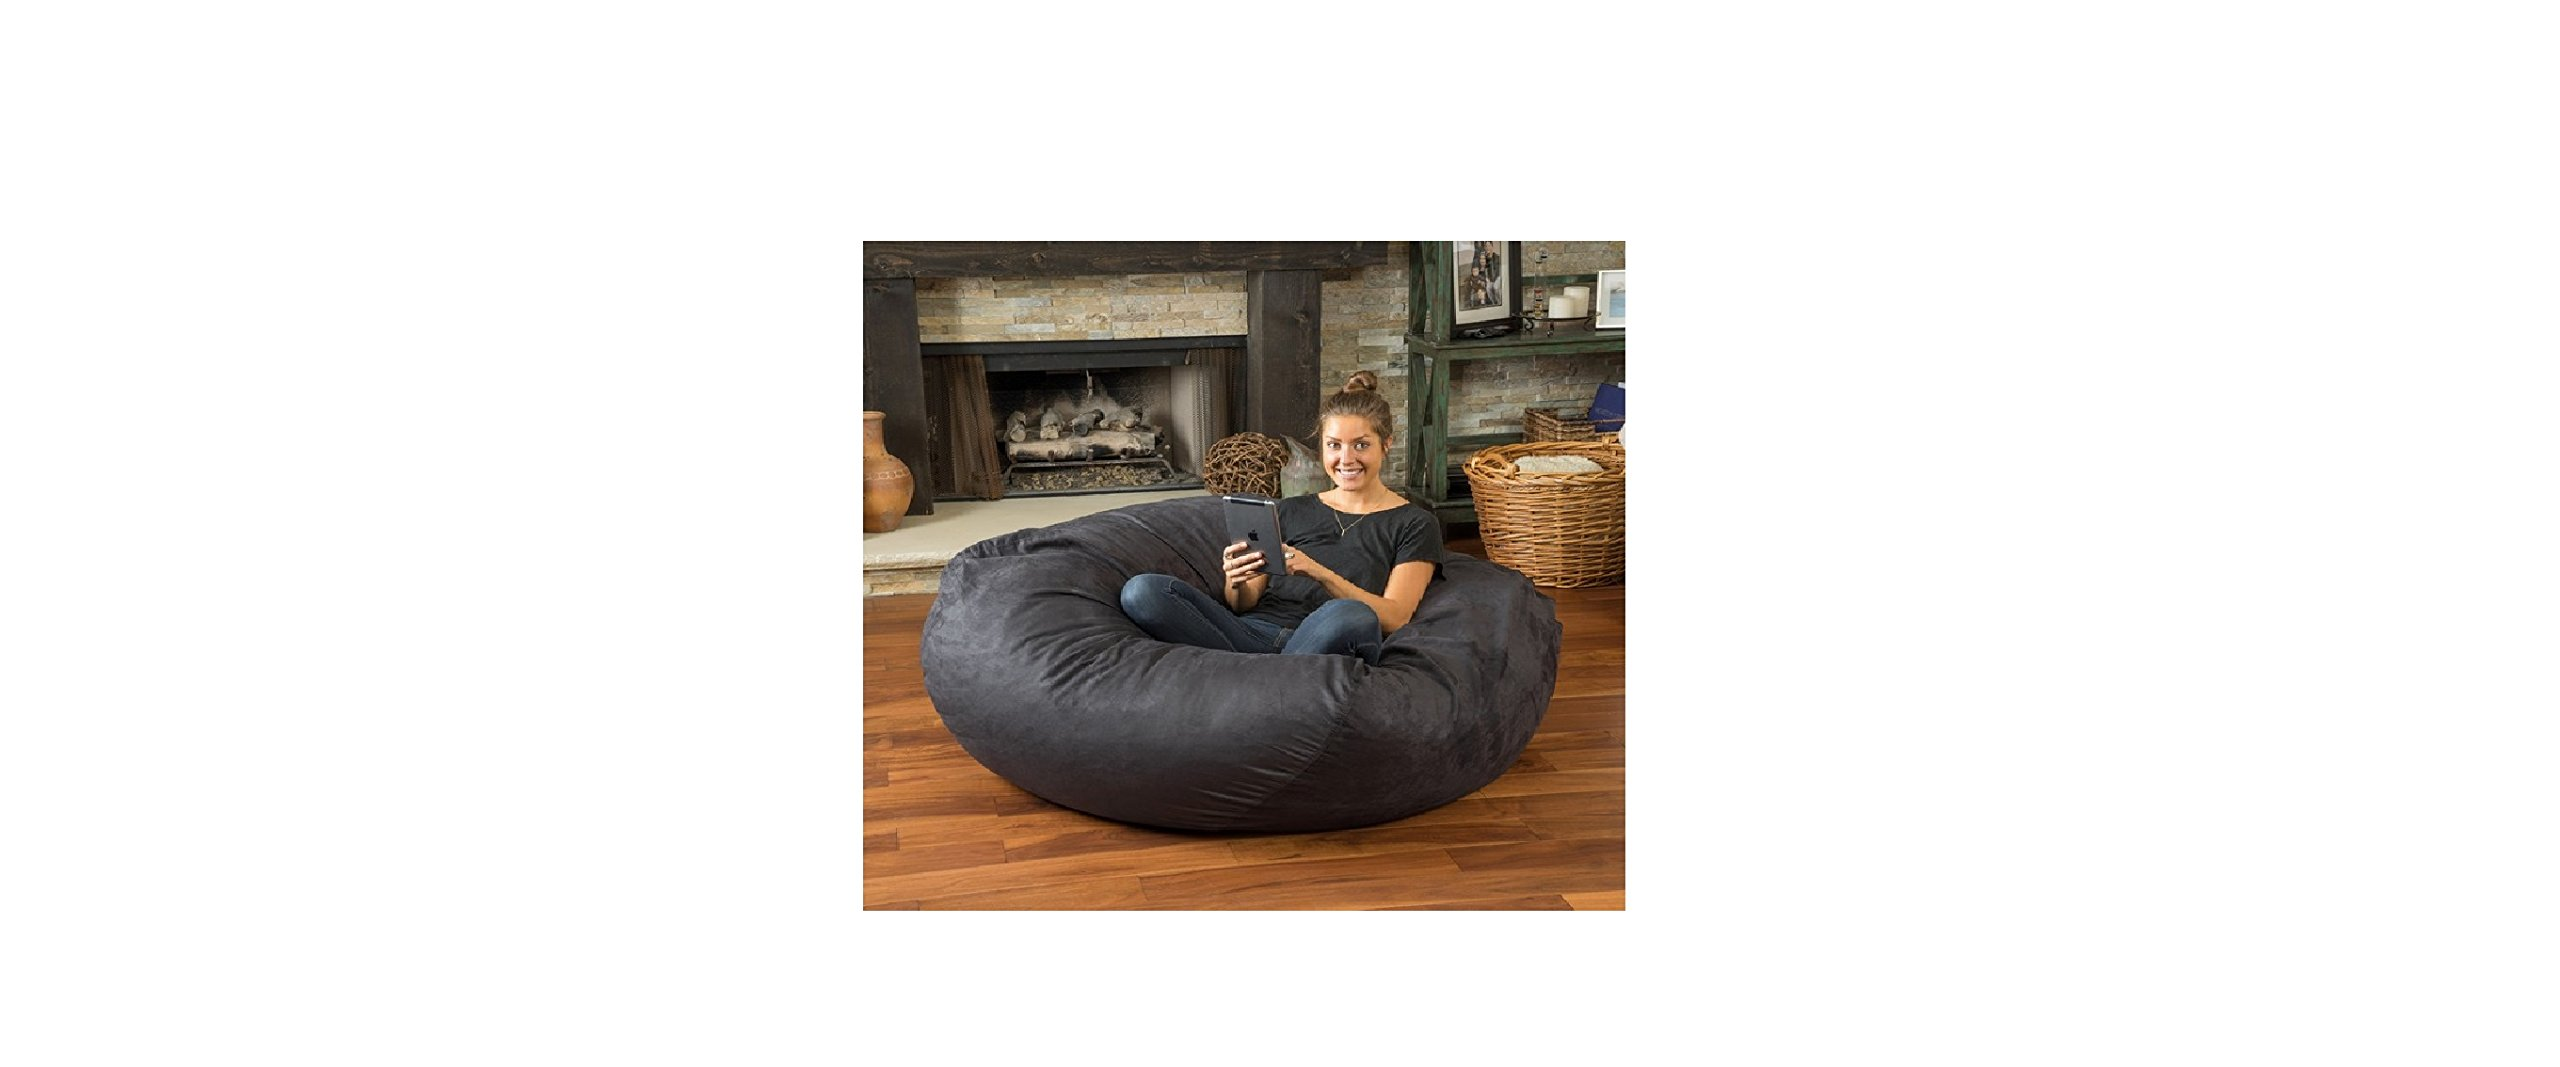 Huge 5-foot Bean Bag Faux Suede By Christopher Knight Madison. This Super Comfortable Beanbag Now Is for Sale! Extra Large Bean Bag Chair Is Amazing Both for Adults and for Children, Kids Can Play on It, While Adults Can Simply Relax in Its Softness (Char